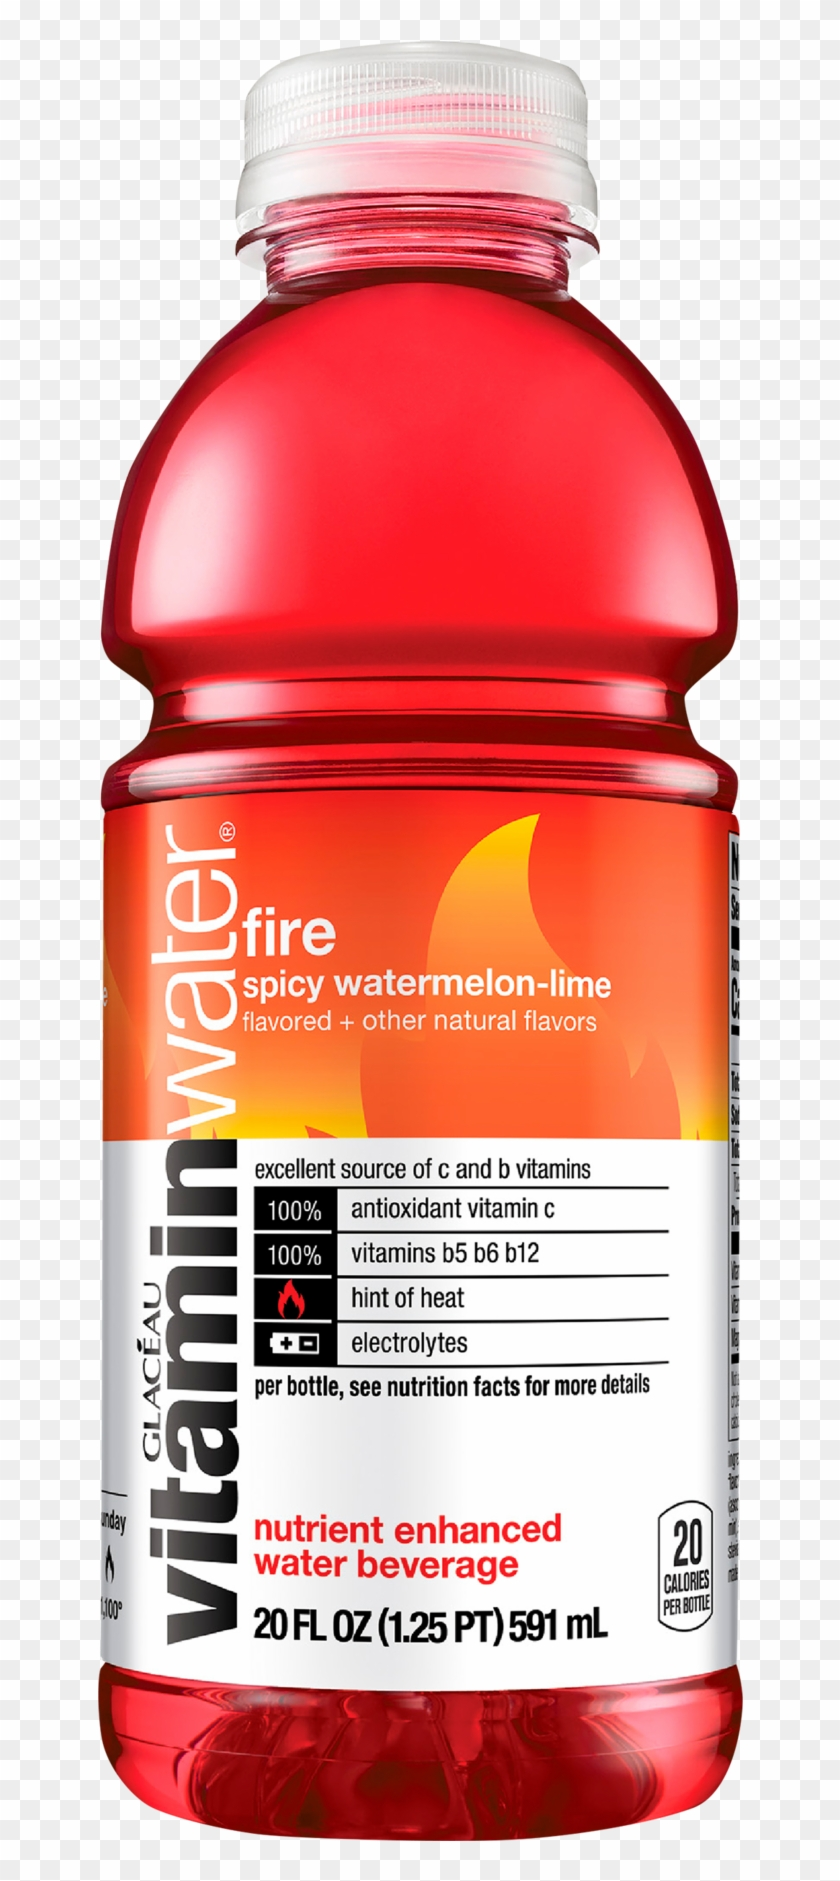 Vitaminwater Glaceau Fire-ko 20 Fl Oz Pl Bt Prop, - Vitamin Water Fire And Ice Clipart #3866050